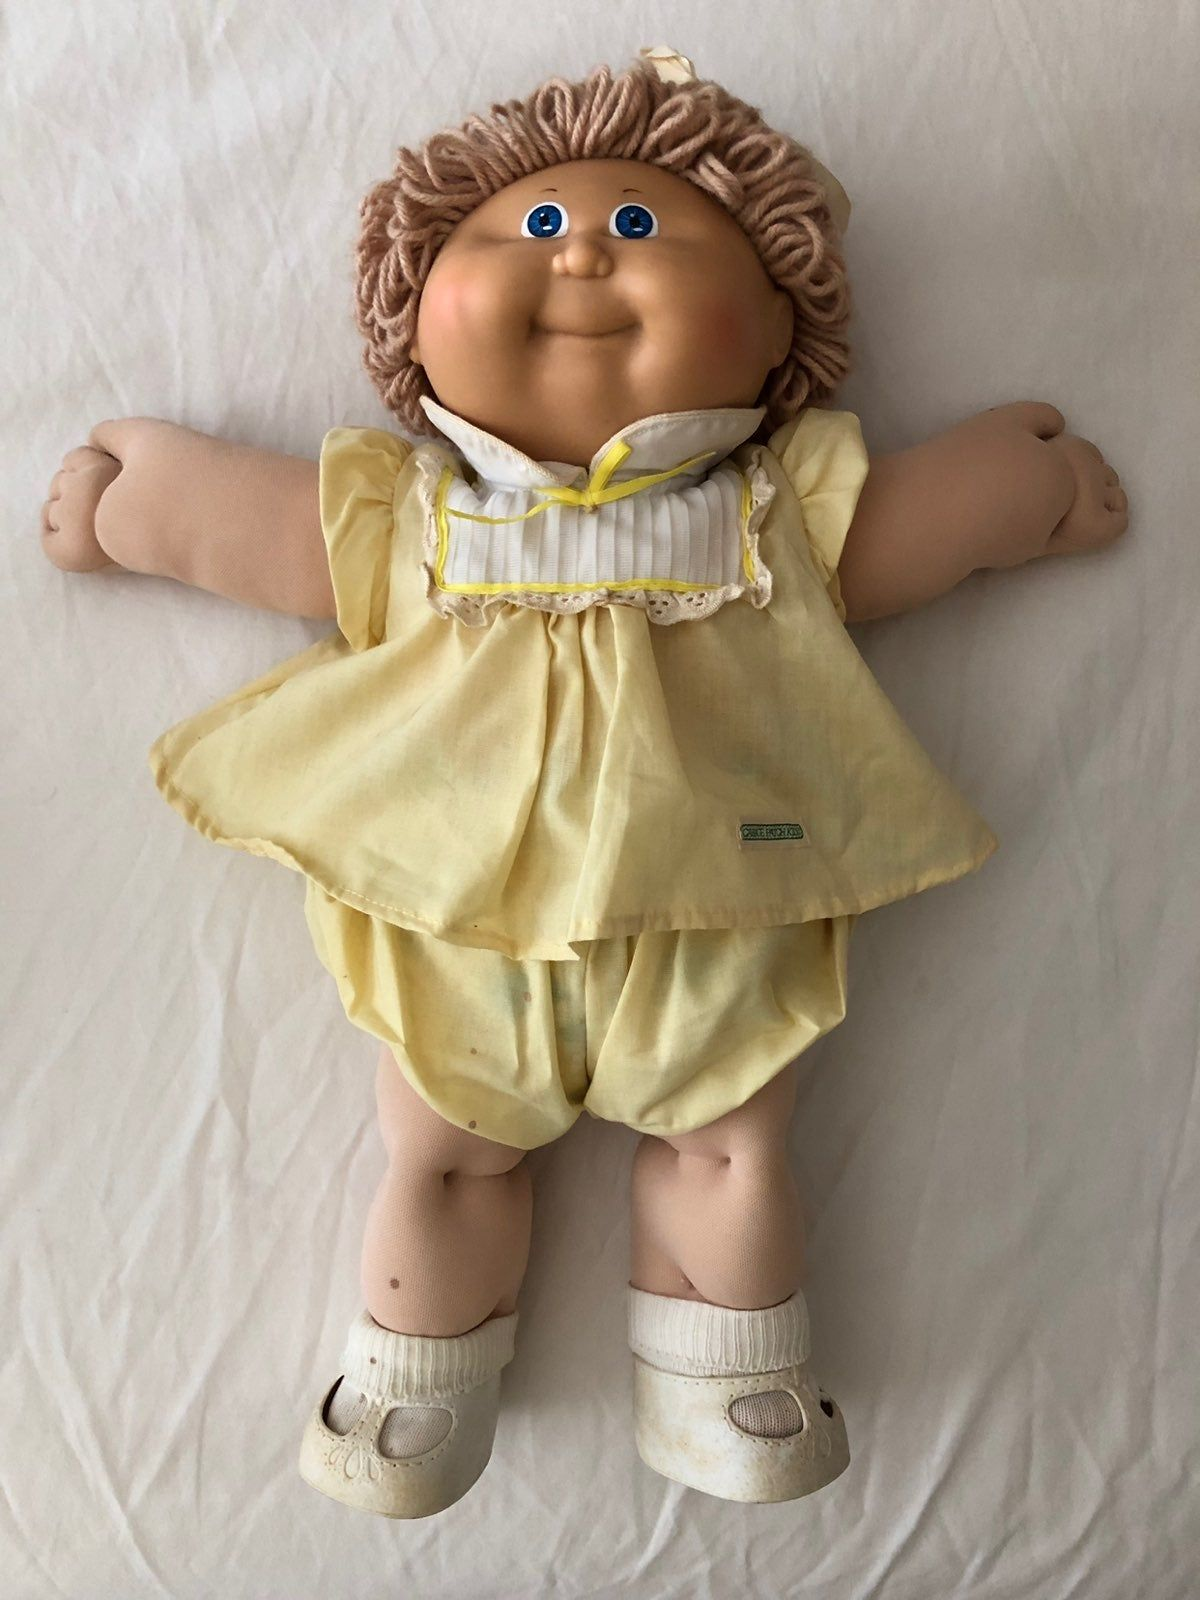 Cabbage Patch Kid 1978 82 But Signature Says 85 A Few Stains On Her Also She Has He Cabbage Patch Kids Clothes Cabbage Patch Kids Dolls Cabbage Patch Kids